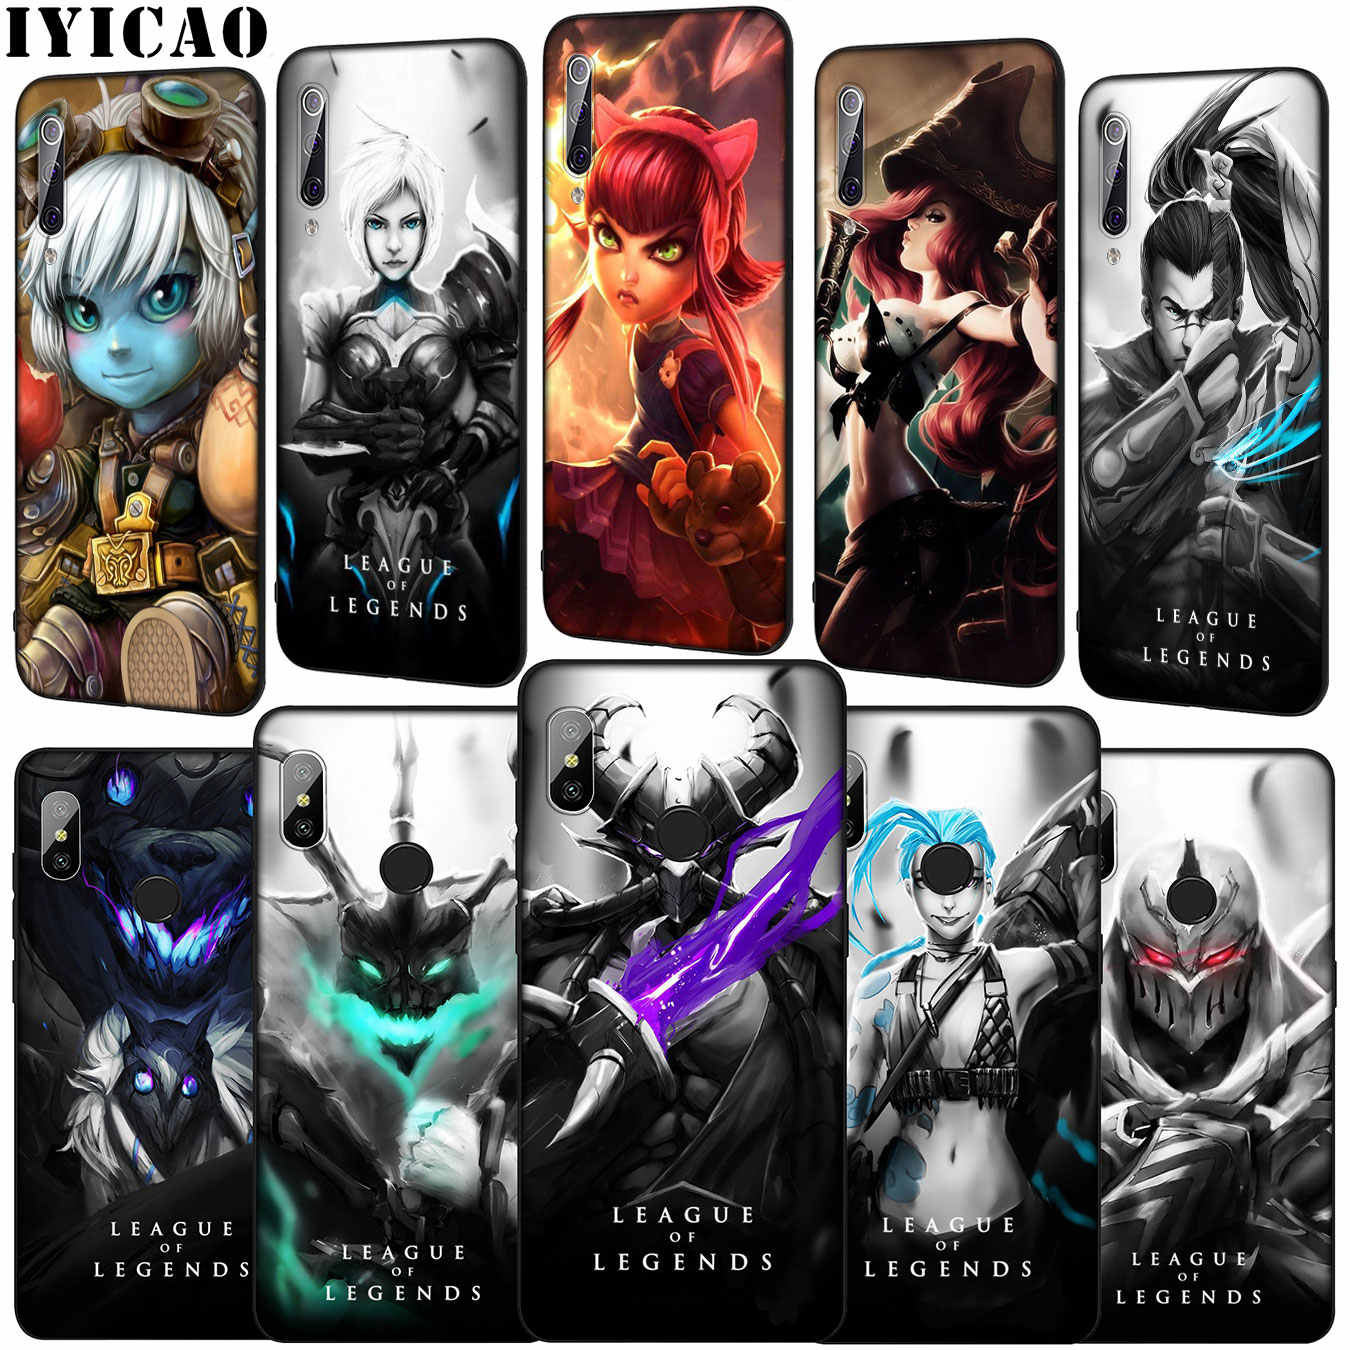 IYICAO lol League Of Legends Soft Phone Case voor Xiao mi mi 9 9 t A3 PRO CC9 CC9E 8 a2 Lite A1 6 6X 5X f1 MAX 3 mi 9 mi 8